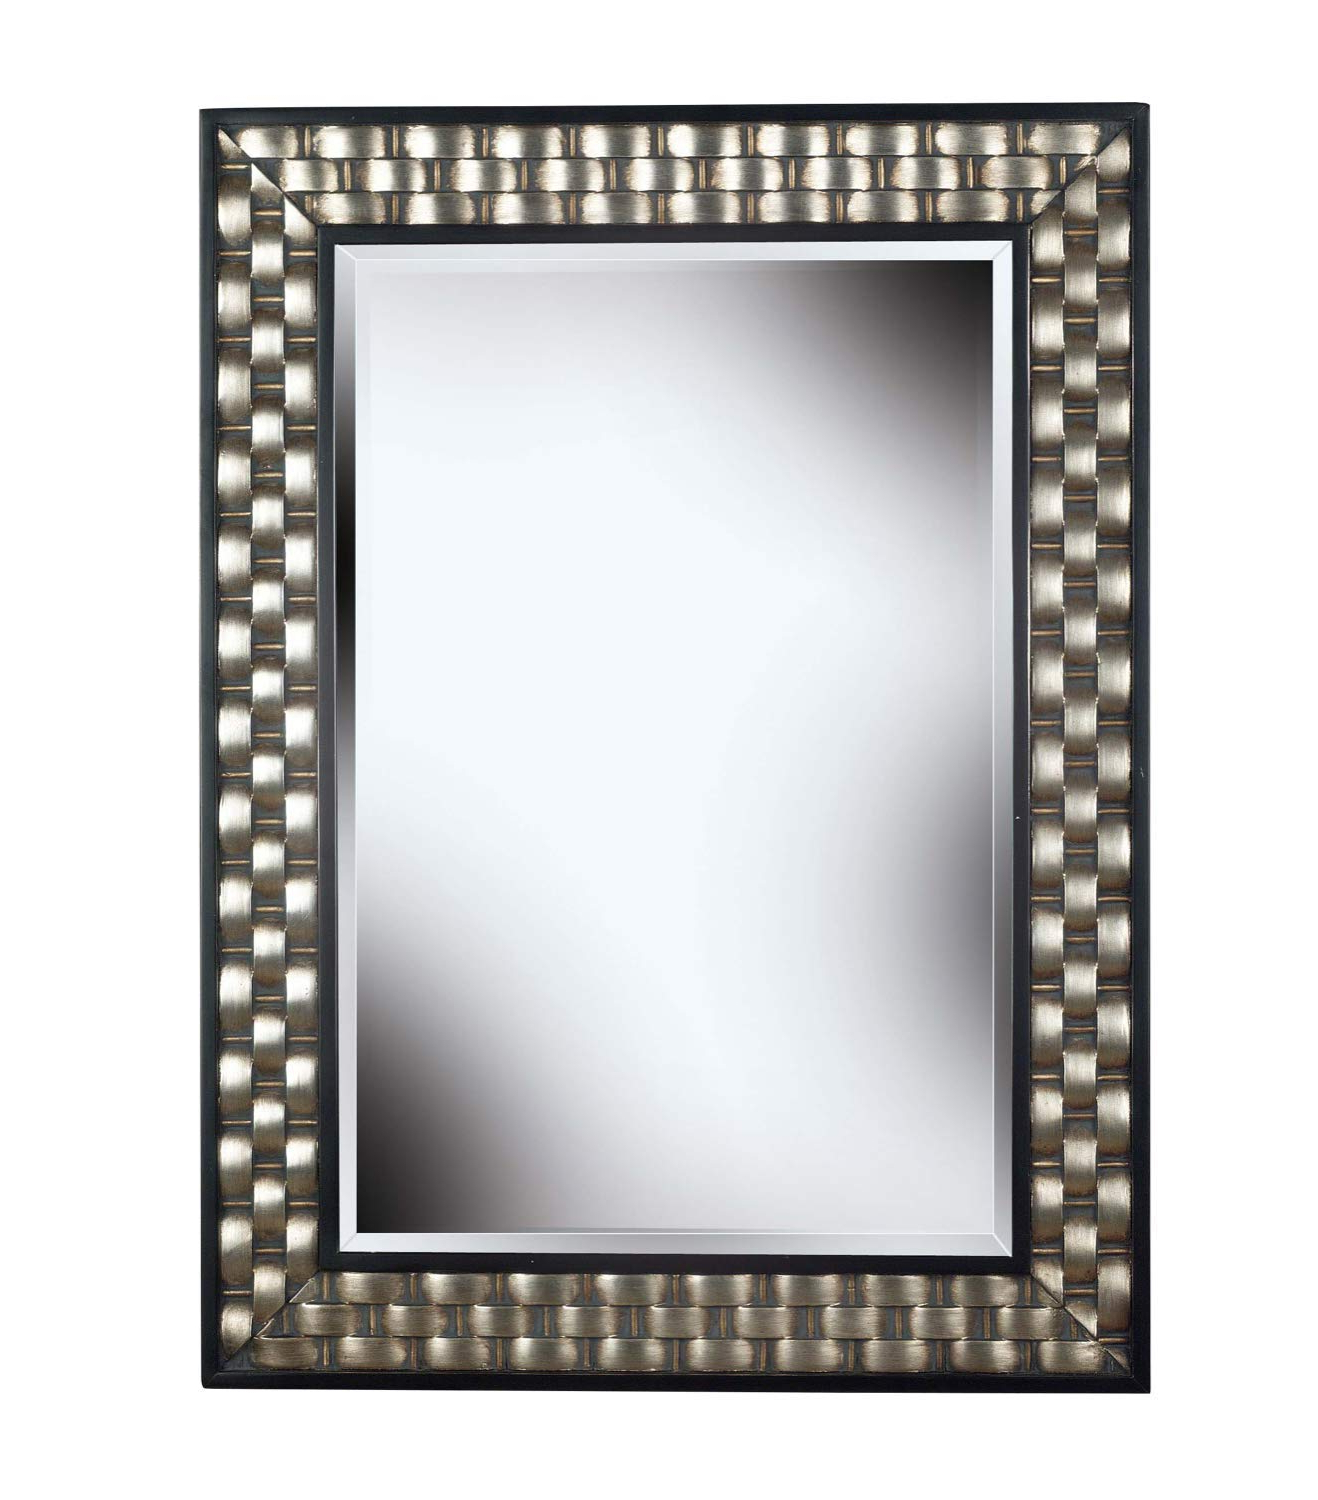 Kenroy Home Checker Rectangular Accent Wall Mirror 38 Inches28 Inches  Silver With Regard To Trendy Rectangle Accent Wall Mirrors (Gallery 7 of 20)